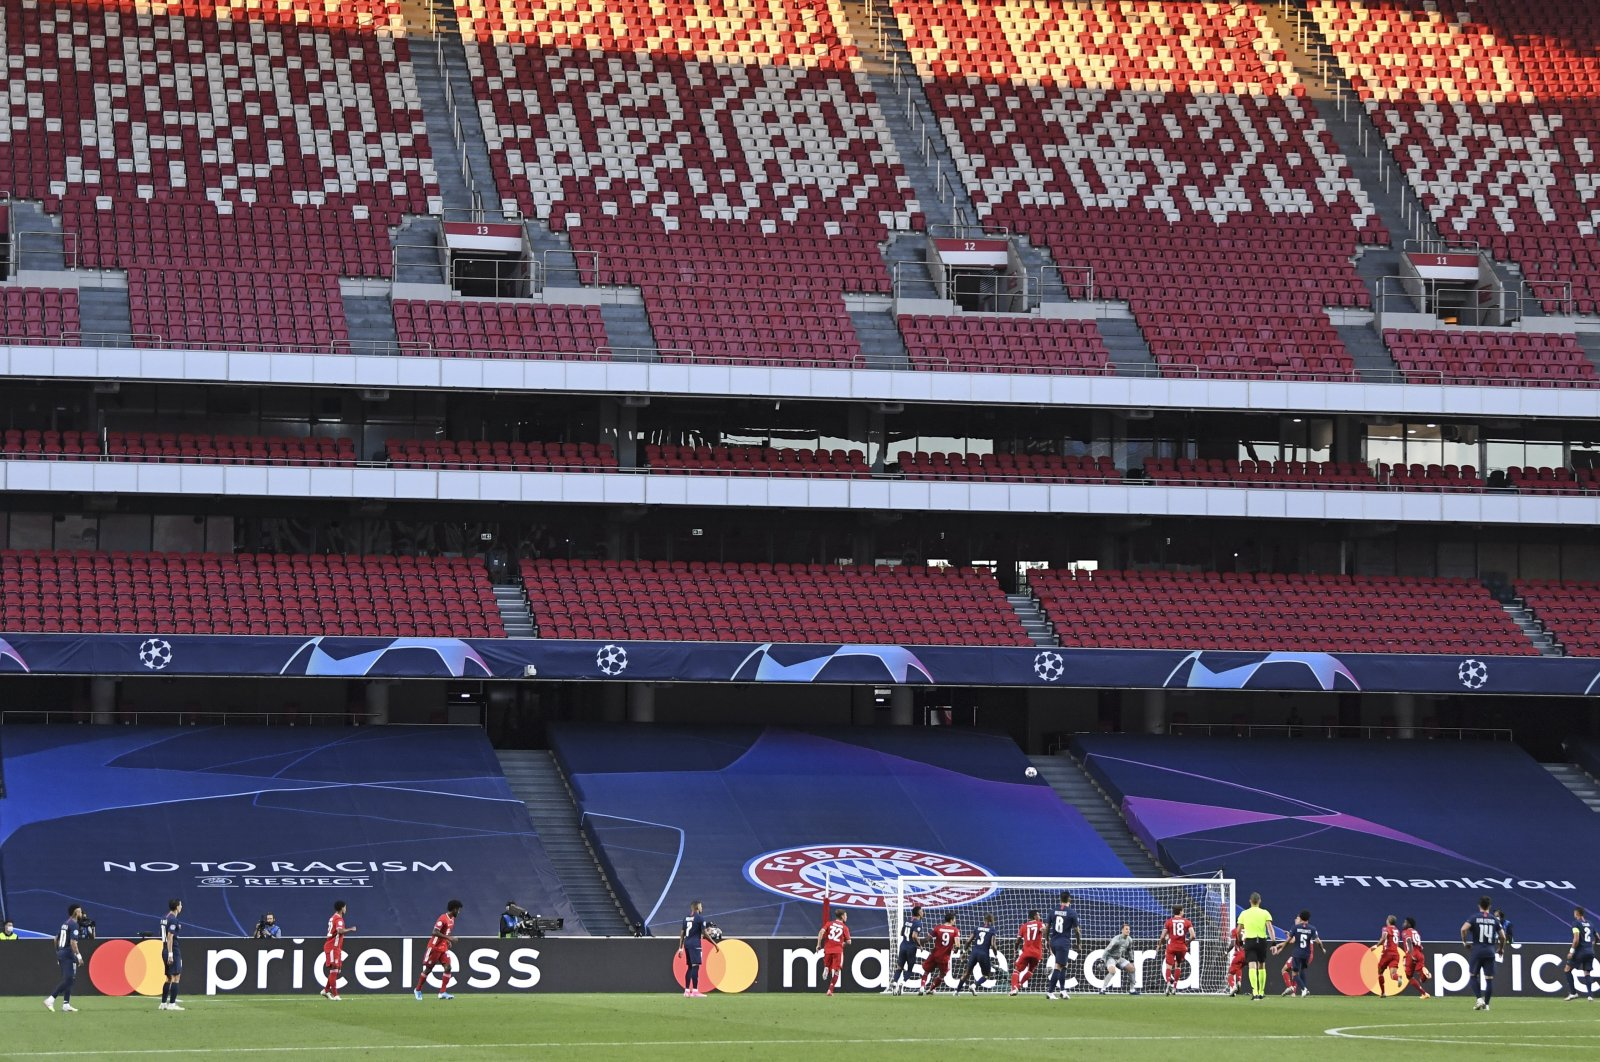 Players challenge for the ball in front of empty stands during the Champions League final match between Paris Saint-Germain and Bayern Munich in Lisbon, Portugal, Aug. 23, 2020. (AP Photo)